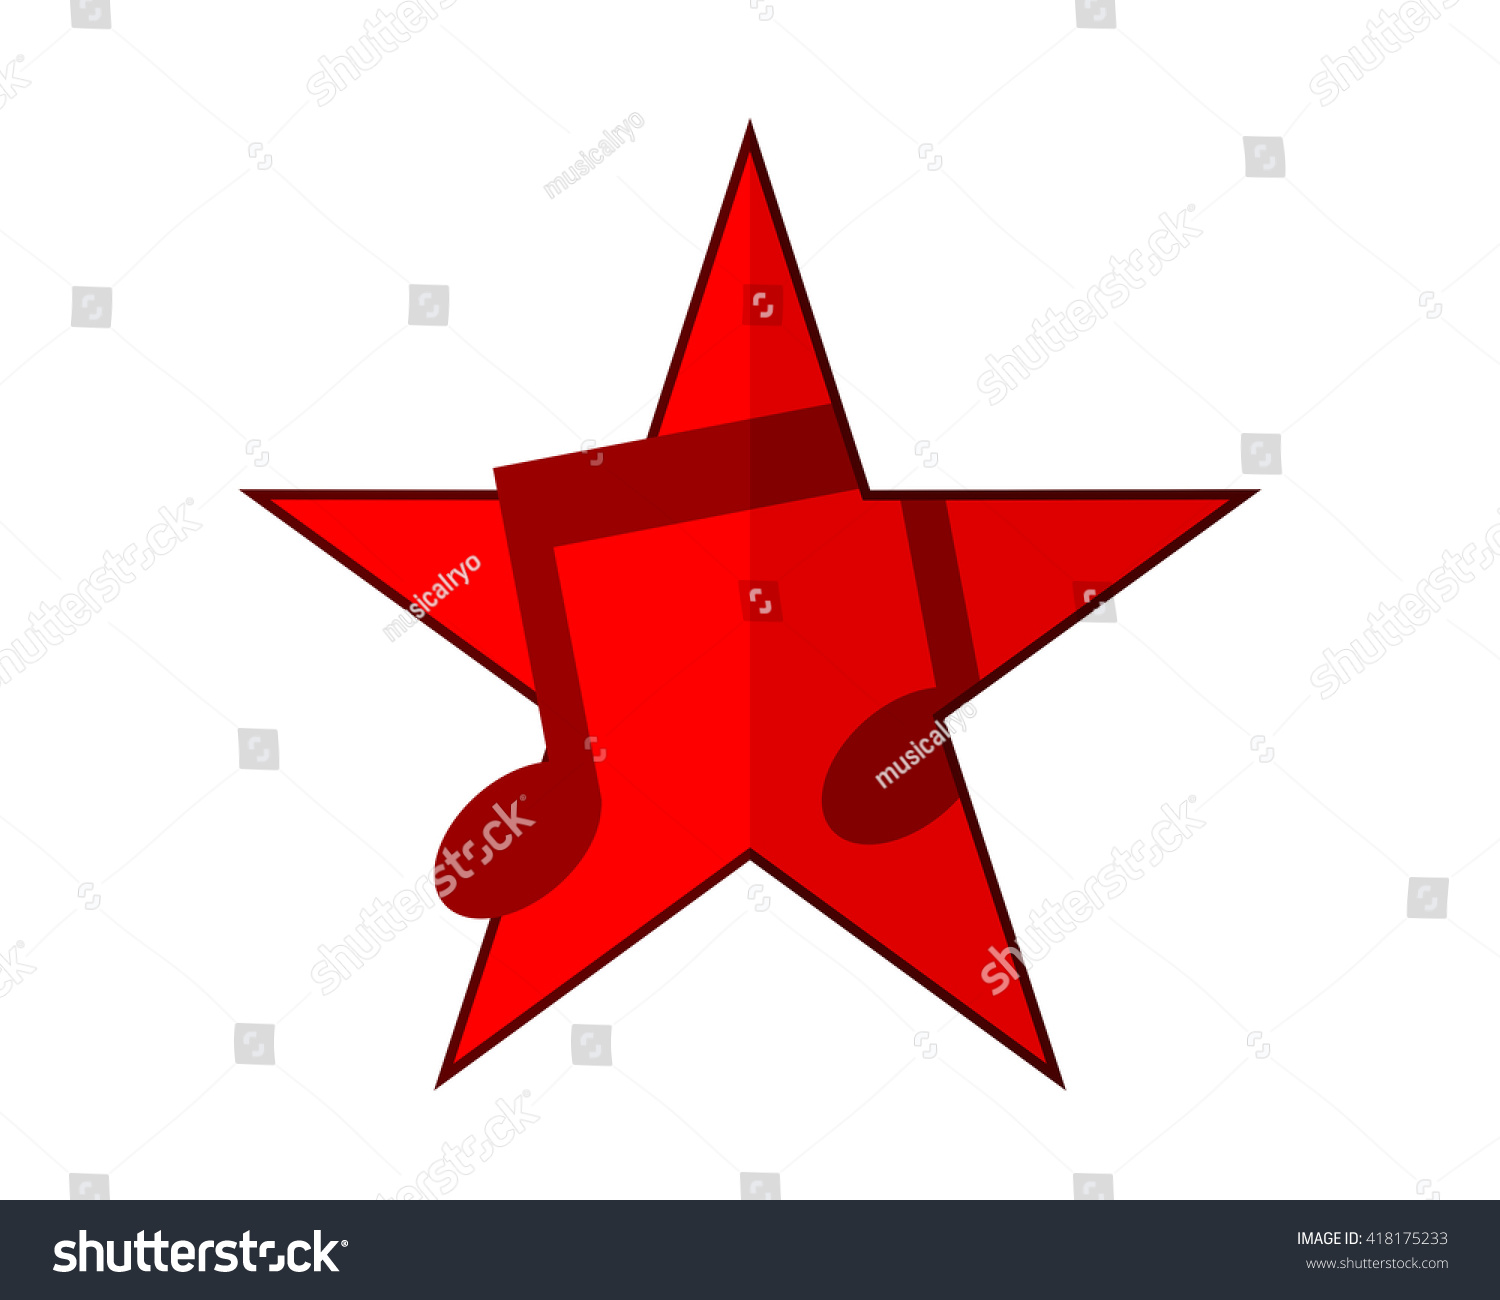 red star musical notes tone tune stock vector 418175233 shutterstock rh shutterstock com Single Music Notes Music Notes Background